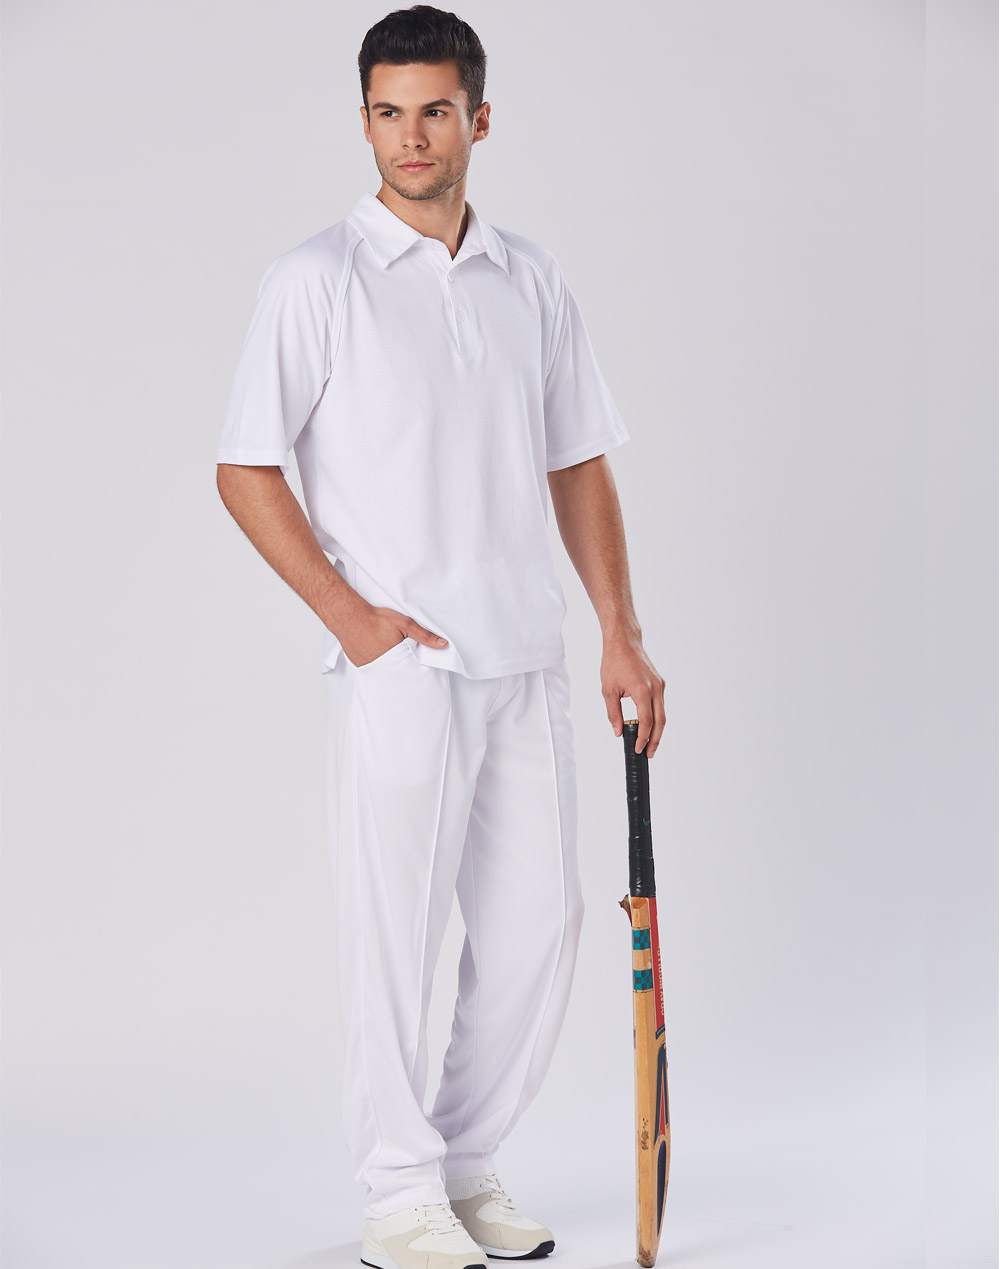 PS29 CRICKET POLO Short Sleeve Men's